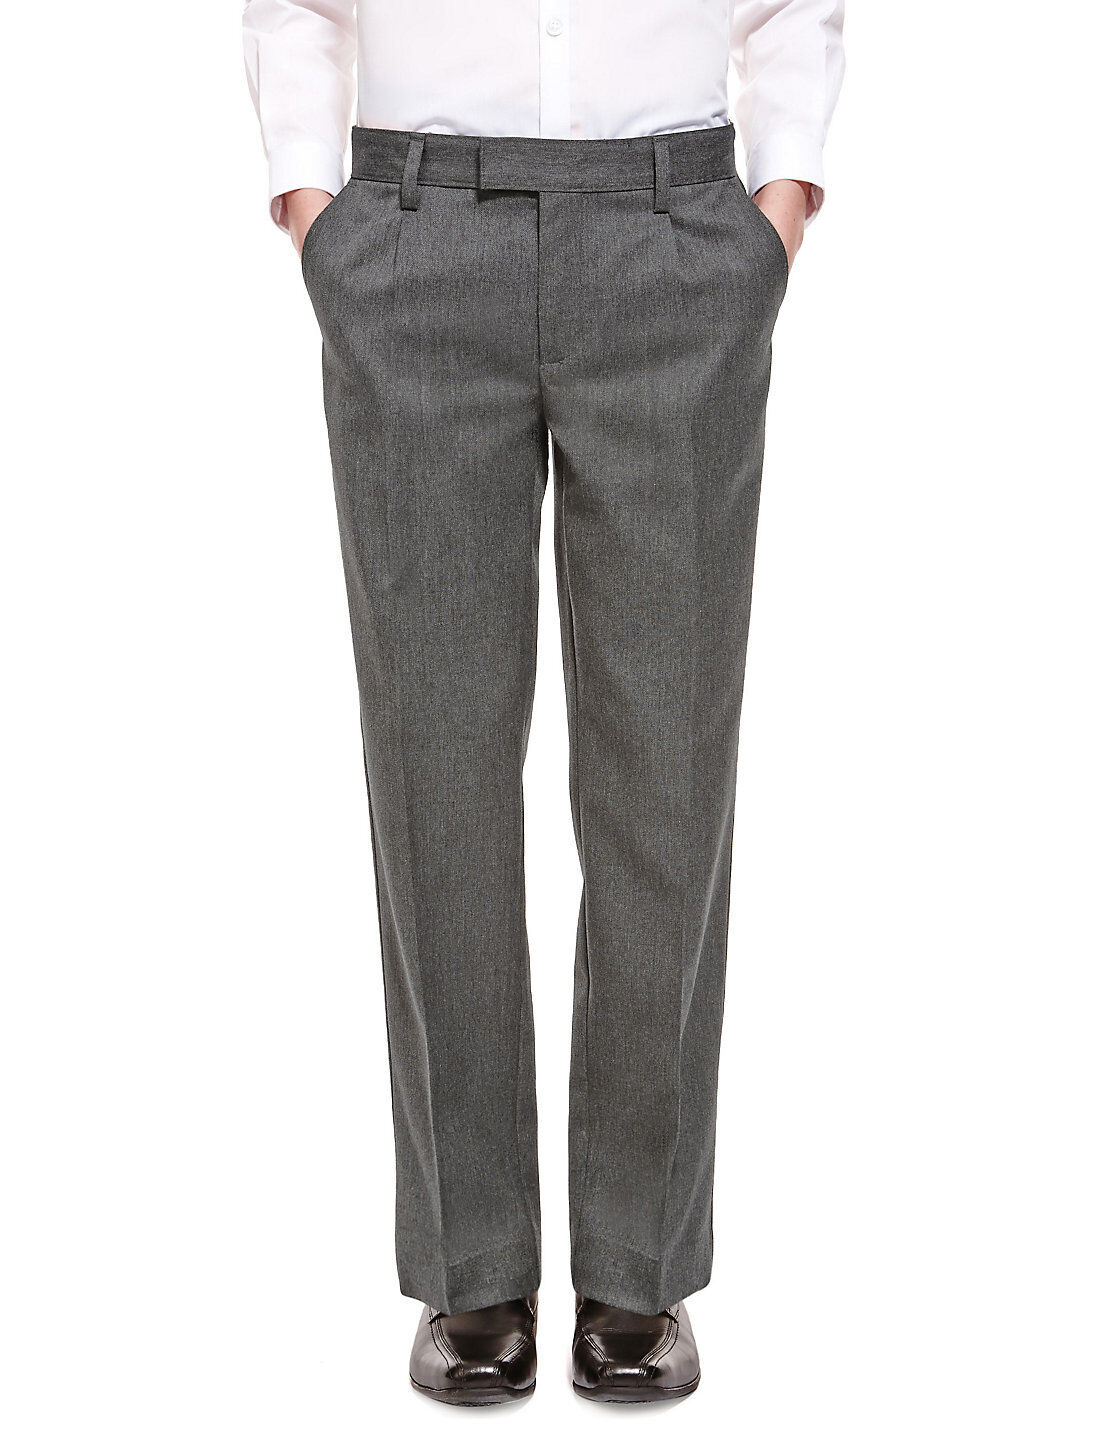 Ages yrs. Flat front trousers with half elastic waist and tailored waistband.